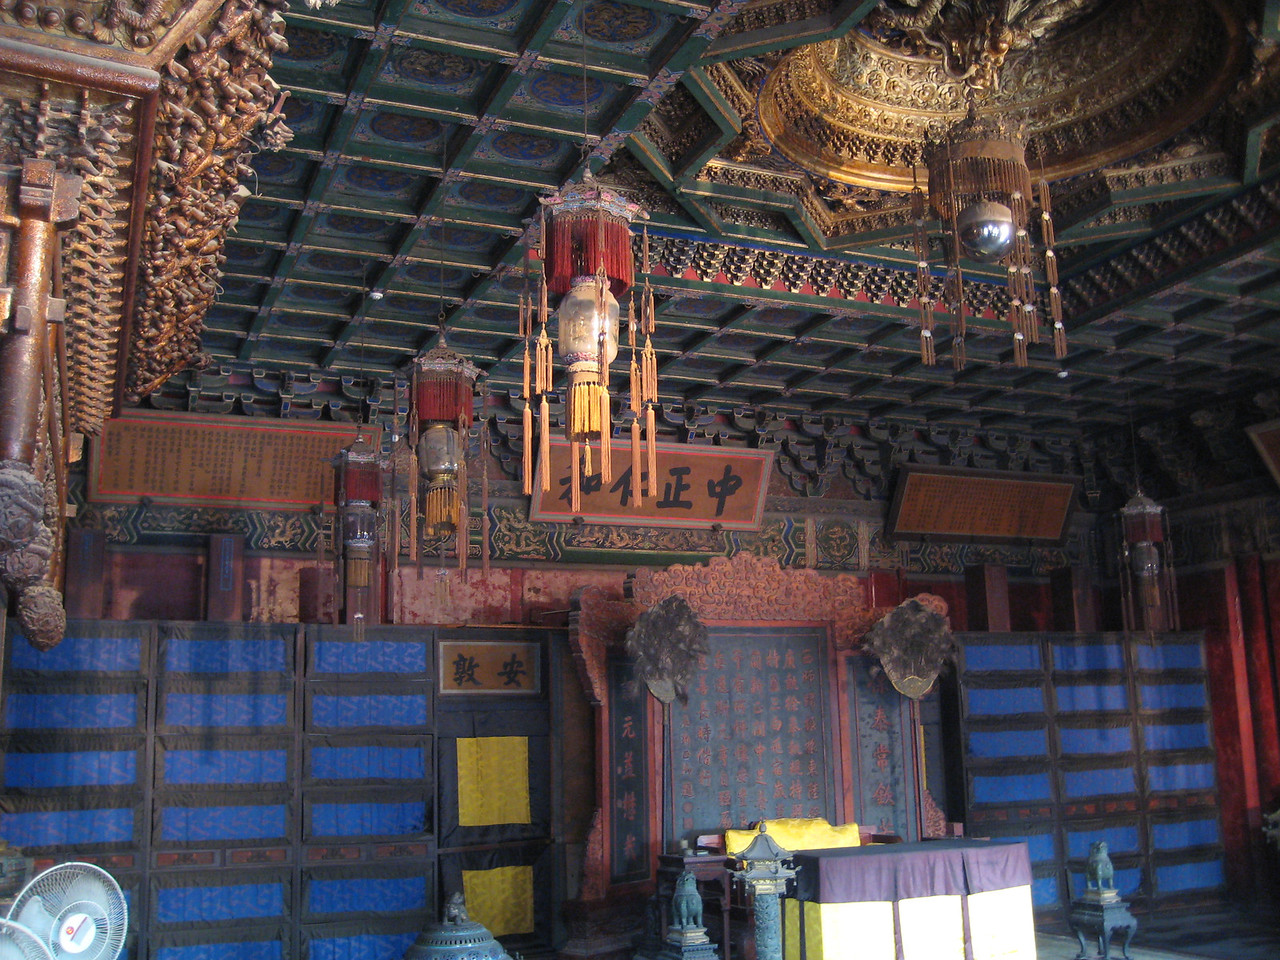 One of the rooms inside the Forbidden Palace